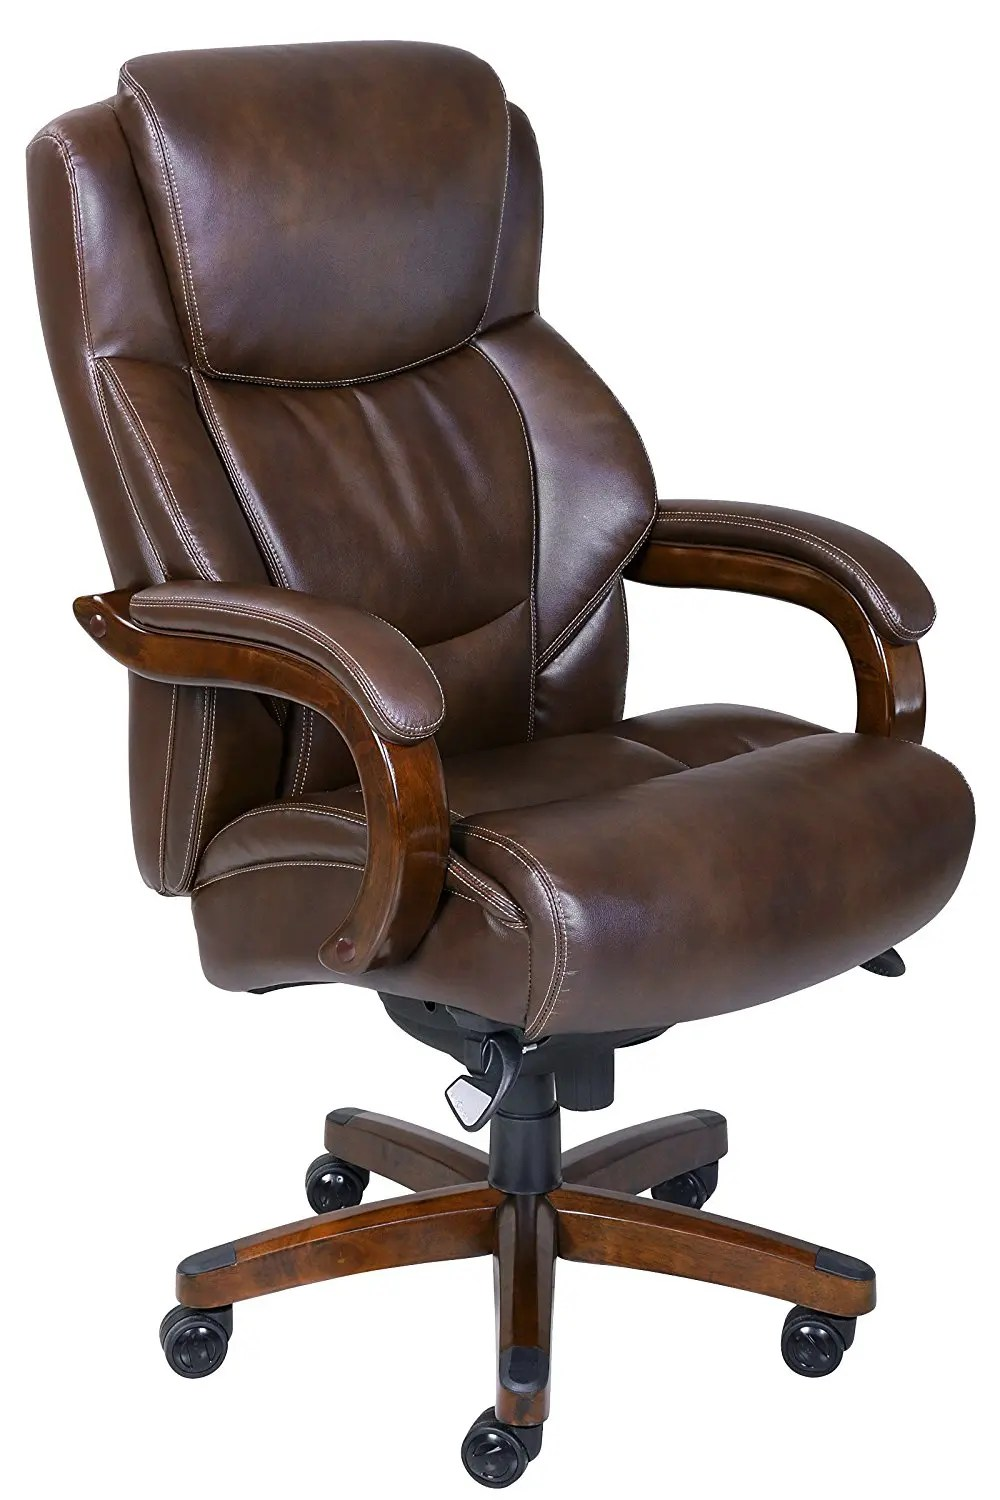 office chairs big and tall velvet armchair australia executive-office-chair-for-heavy-people - best heavy duty stuff